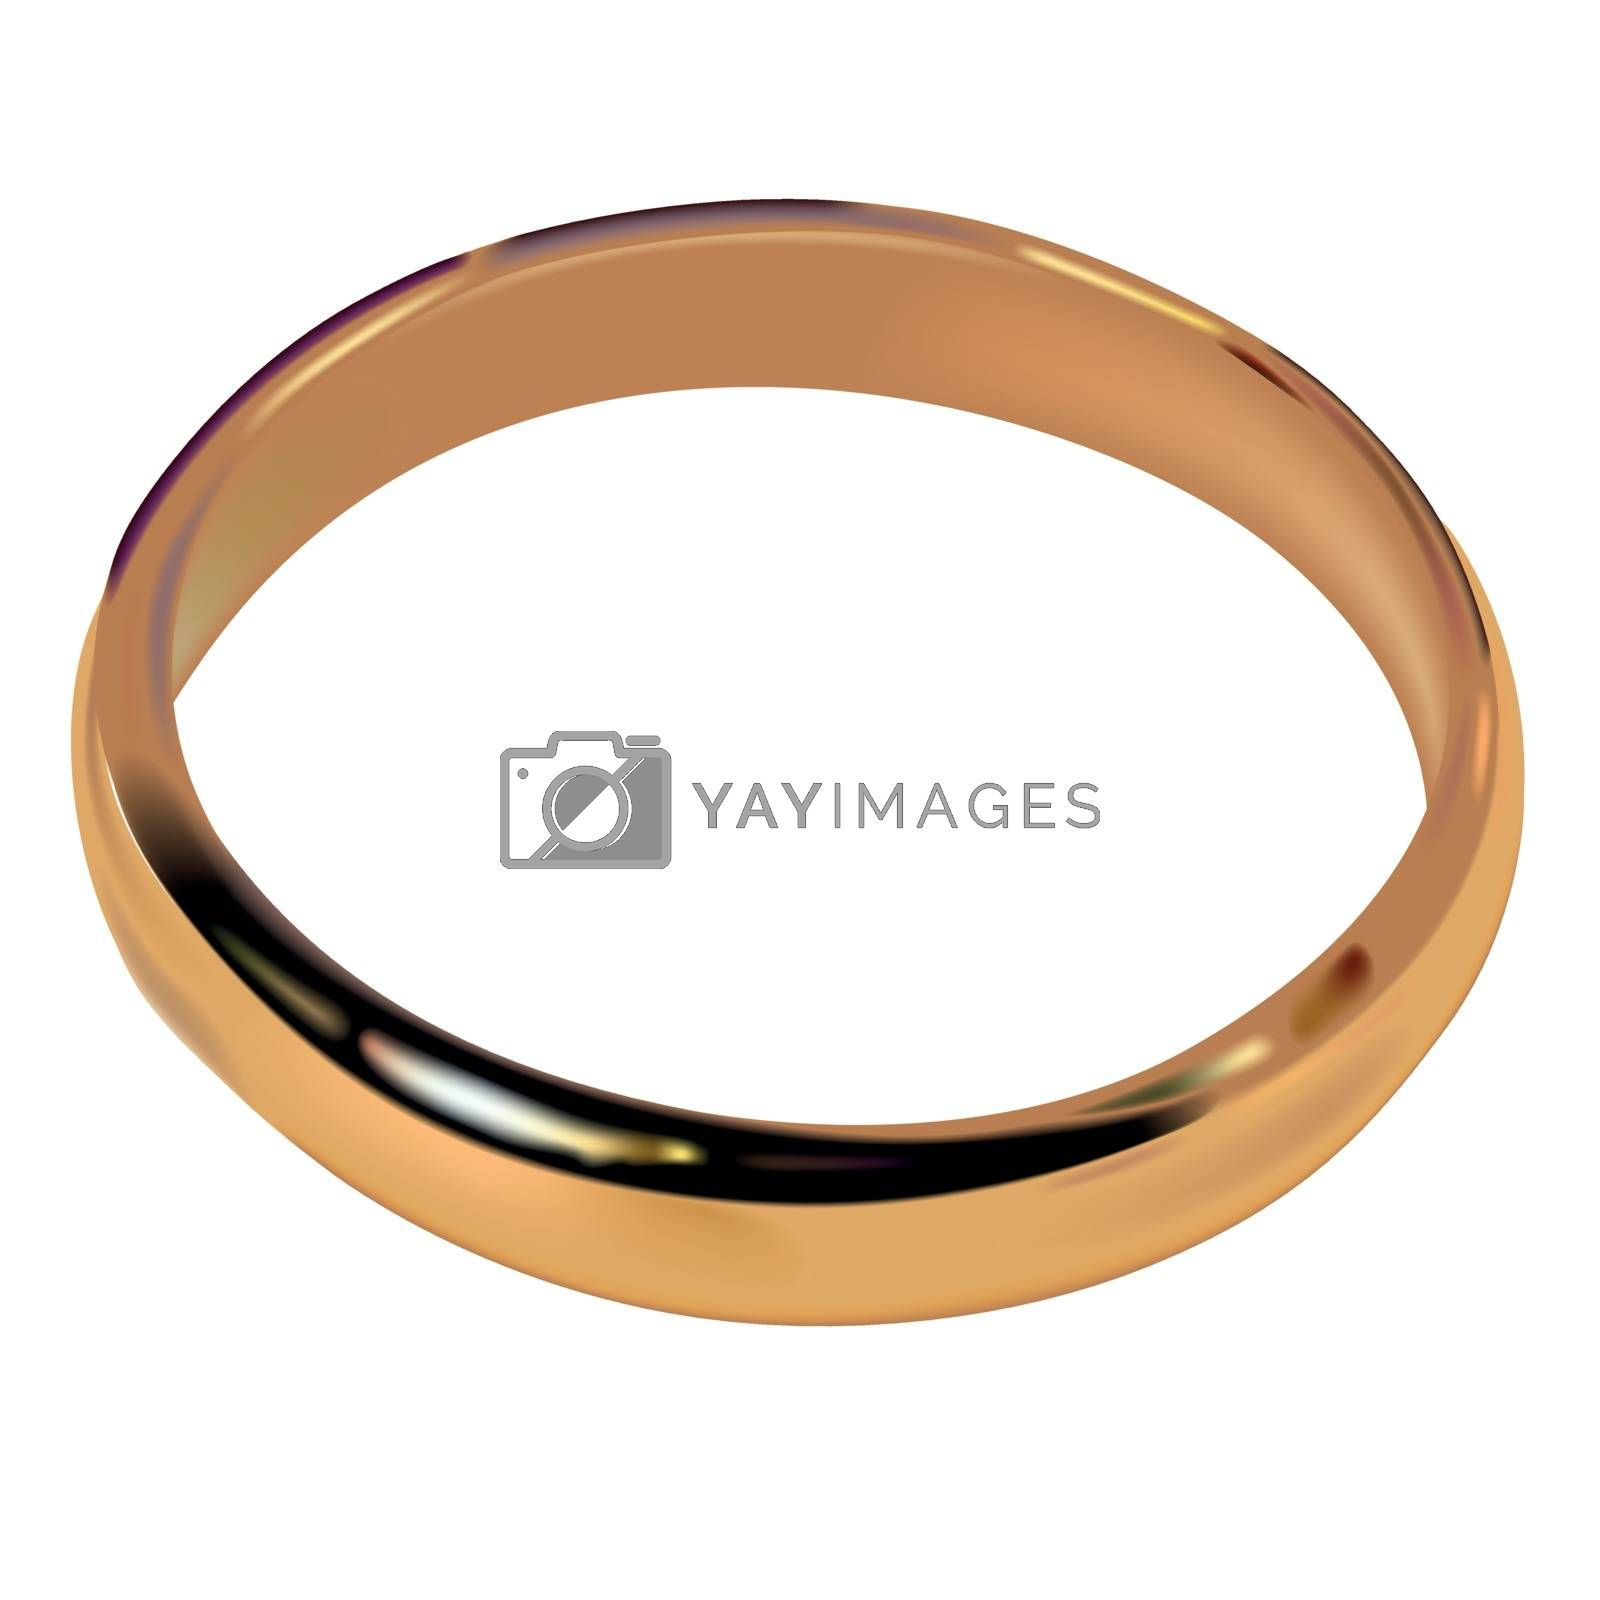 Wedding Ring - Colored Illustration, Vector